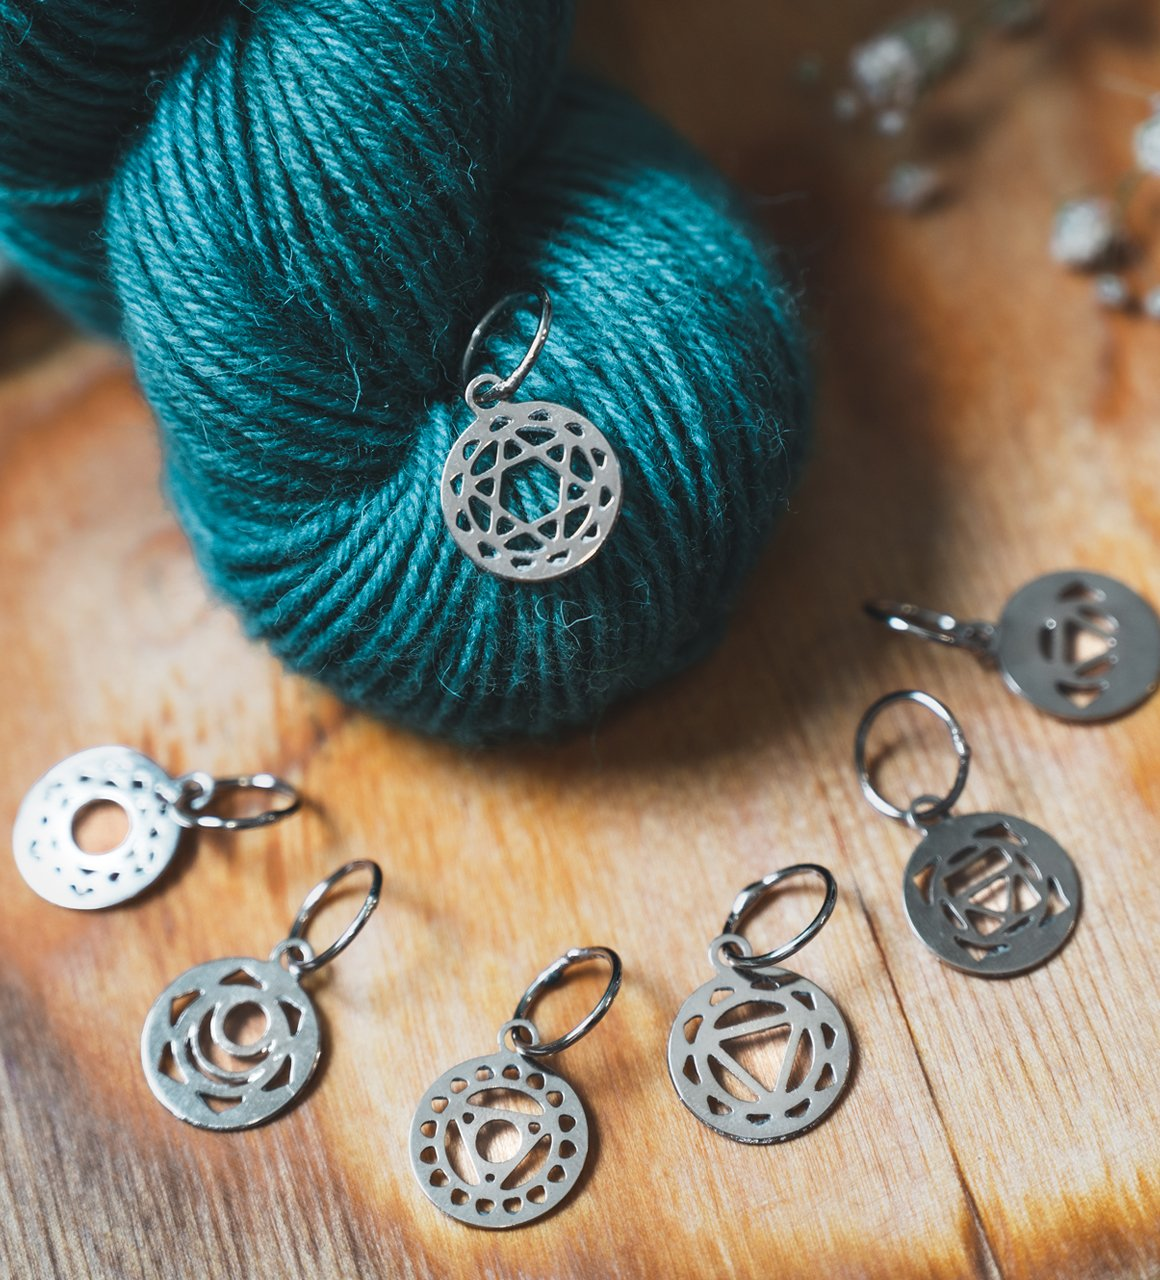 Sterling Silver Plated Chakra Stitch Markers - Knitter's Pride Mindful Collection